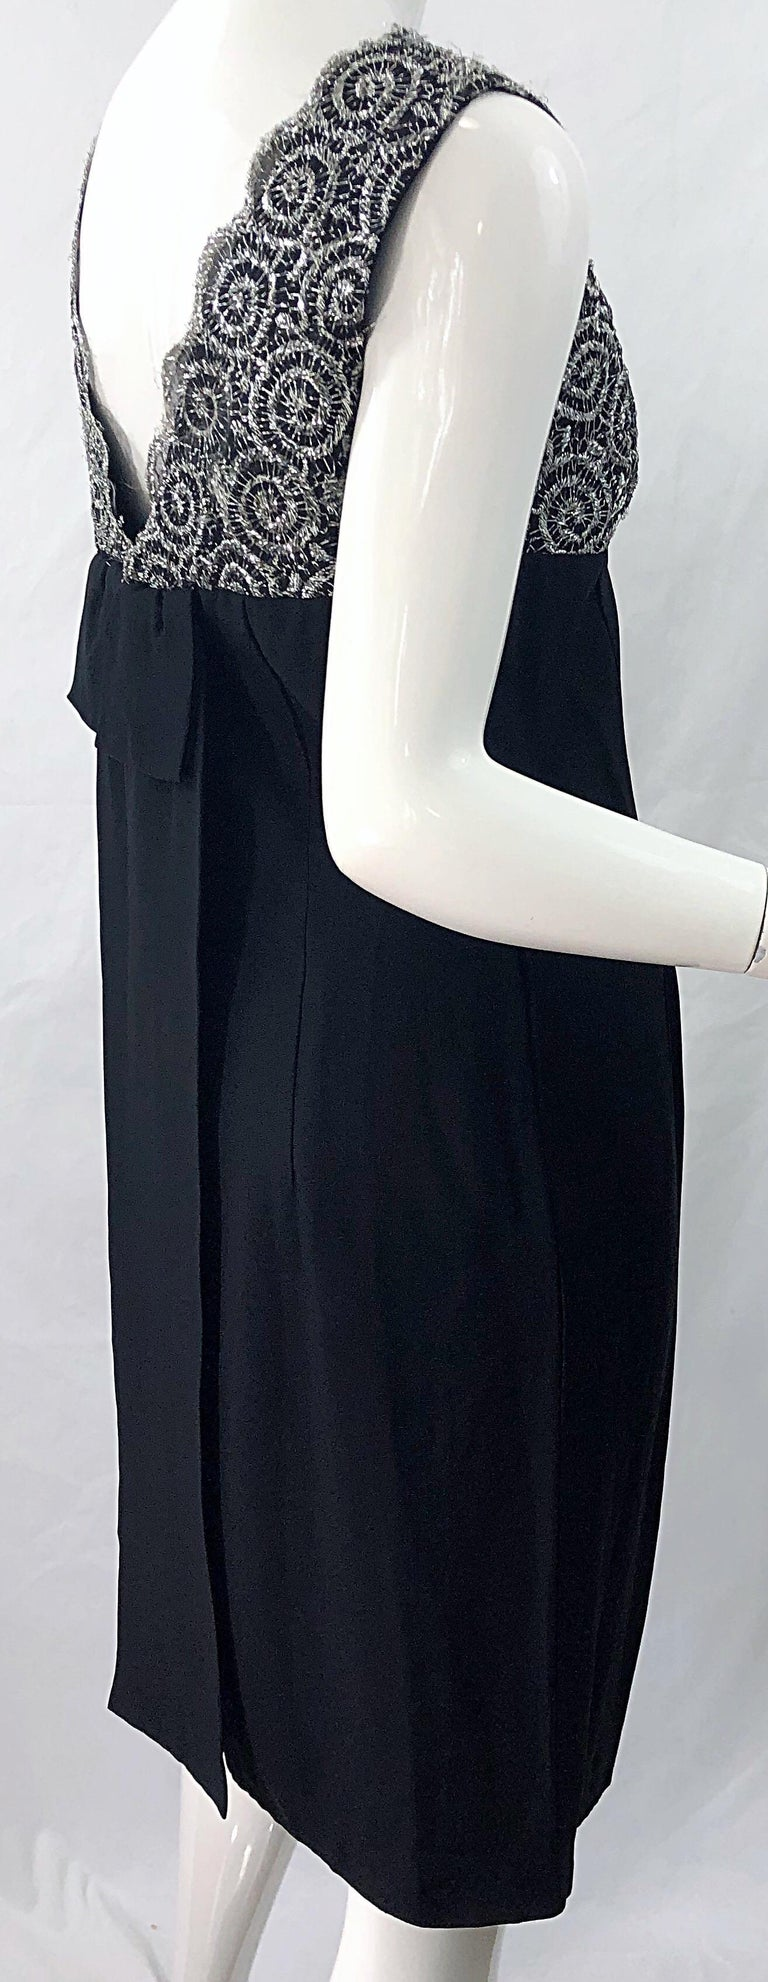 Chic 1960s Black and Silver Metallic Lace Rayon Crepe Vintage 60s Sheath Dress For Sale 3